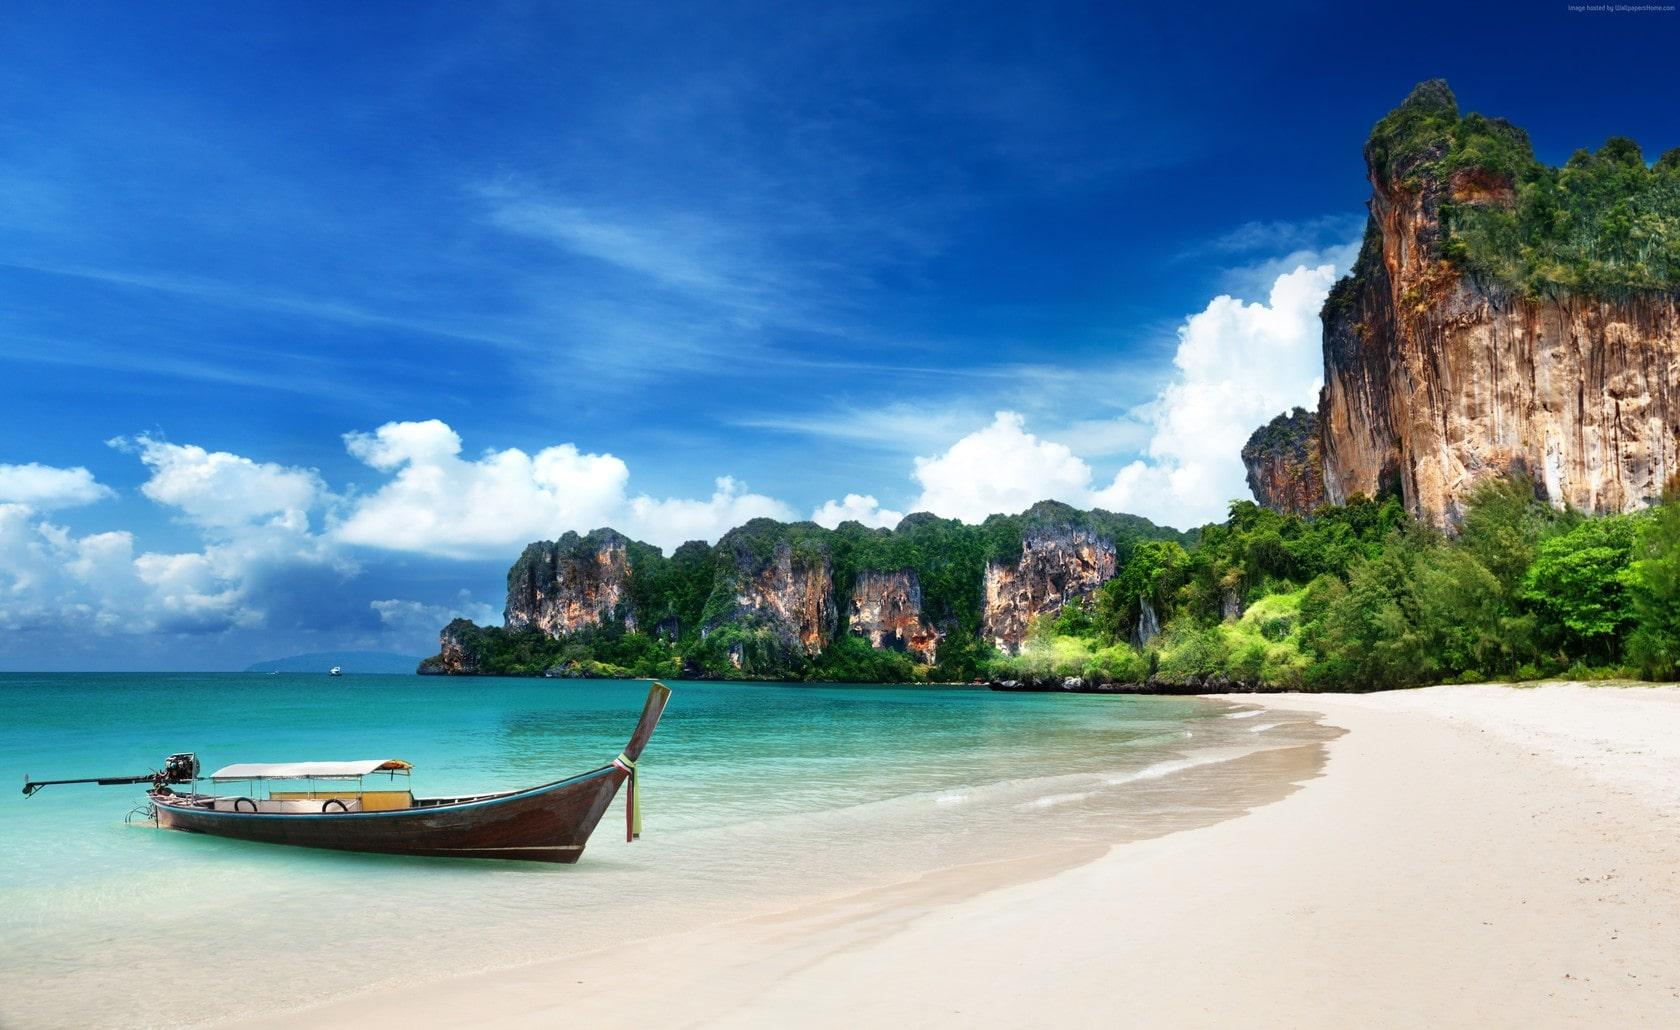 Thailand's Best Beaches 2017. How many are in Phuket? | Thaiger